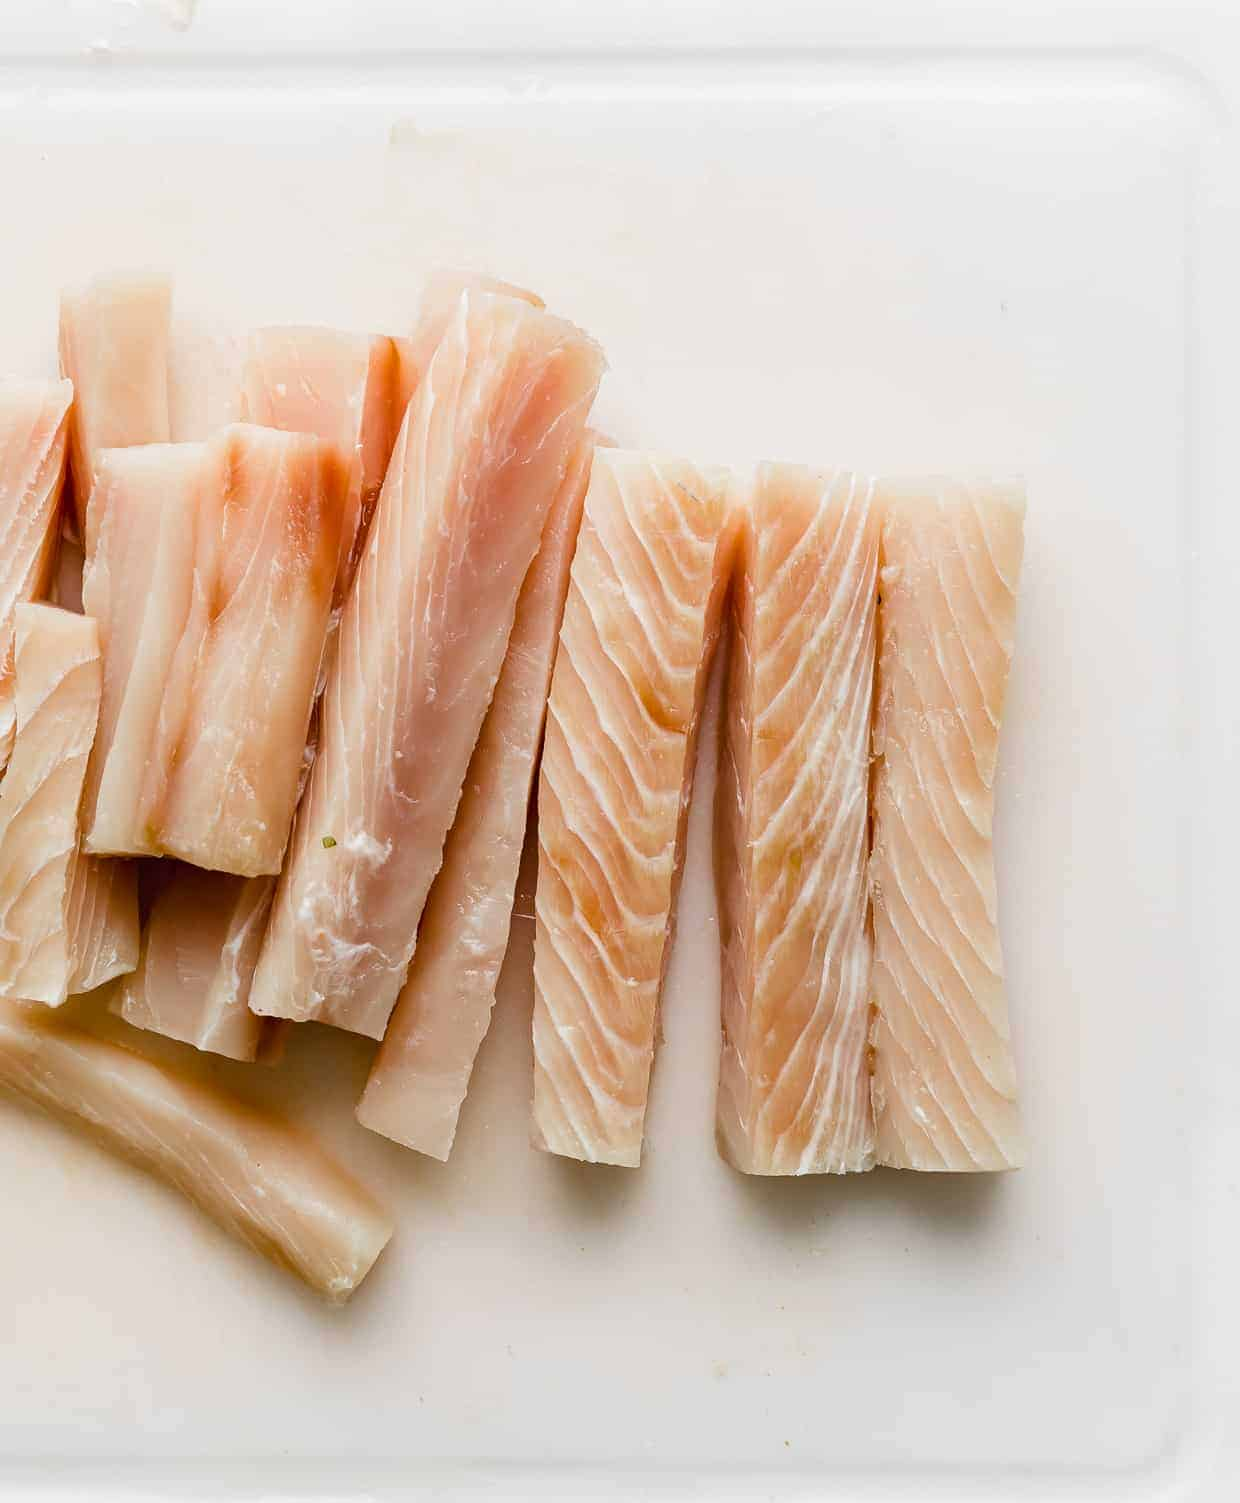 Mahi Mahi fish sliced into thin strips which are resting on a white cutting board.